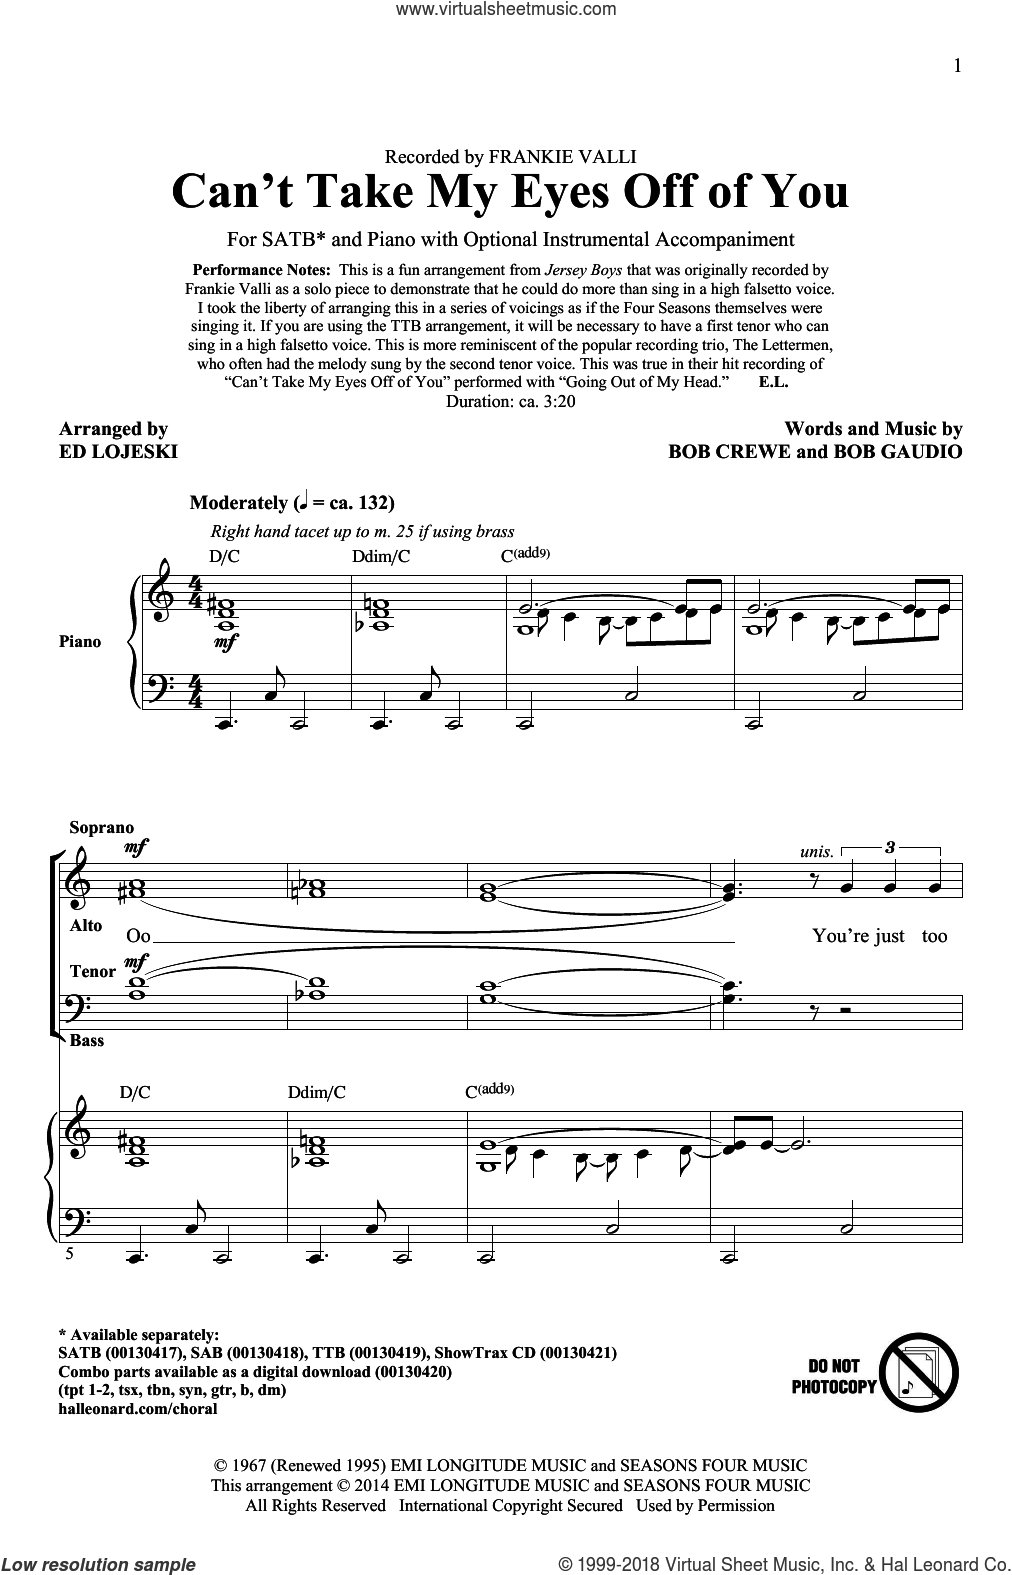 Can't Take My Eyes Off Of You sheet music for choir (SATB: soprano, alto, tenor, bass) by Bob Crewe, Ed Lojeski, Frankie Valli and The Four Seasons, intermediate. Score Image Preview.